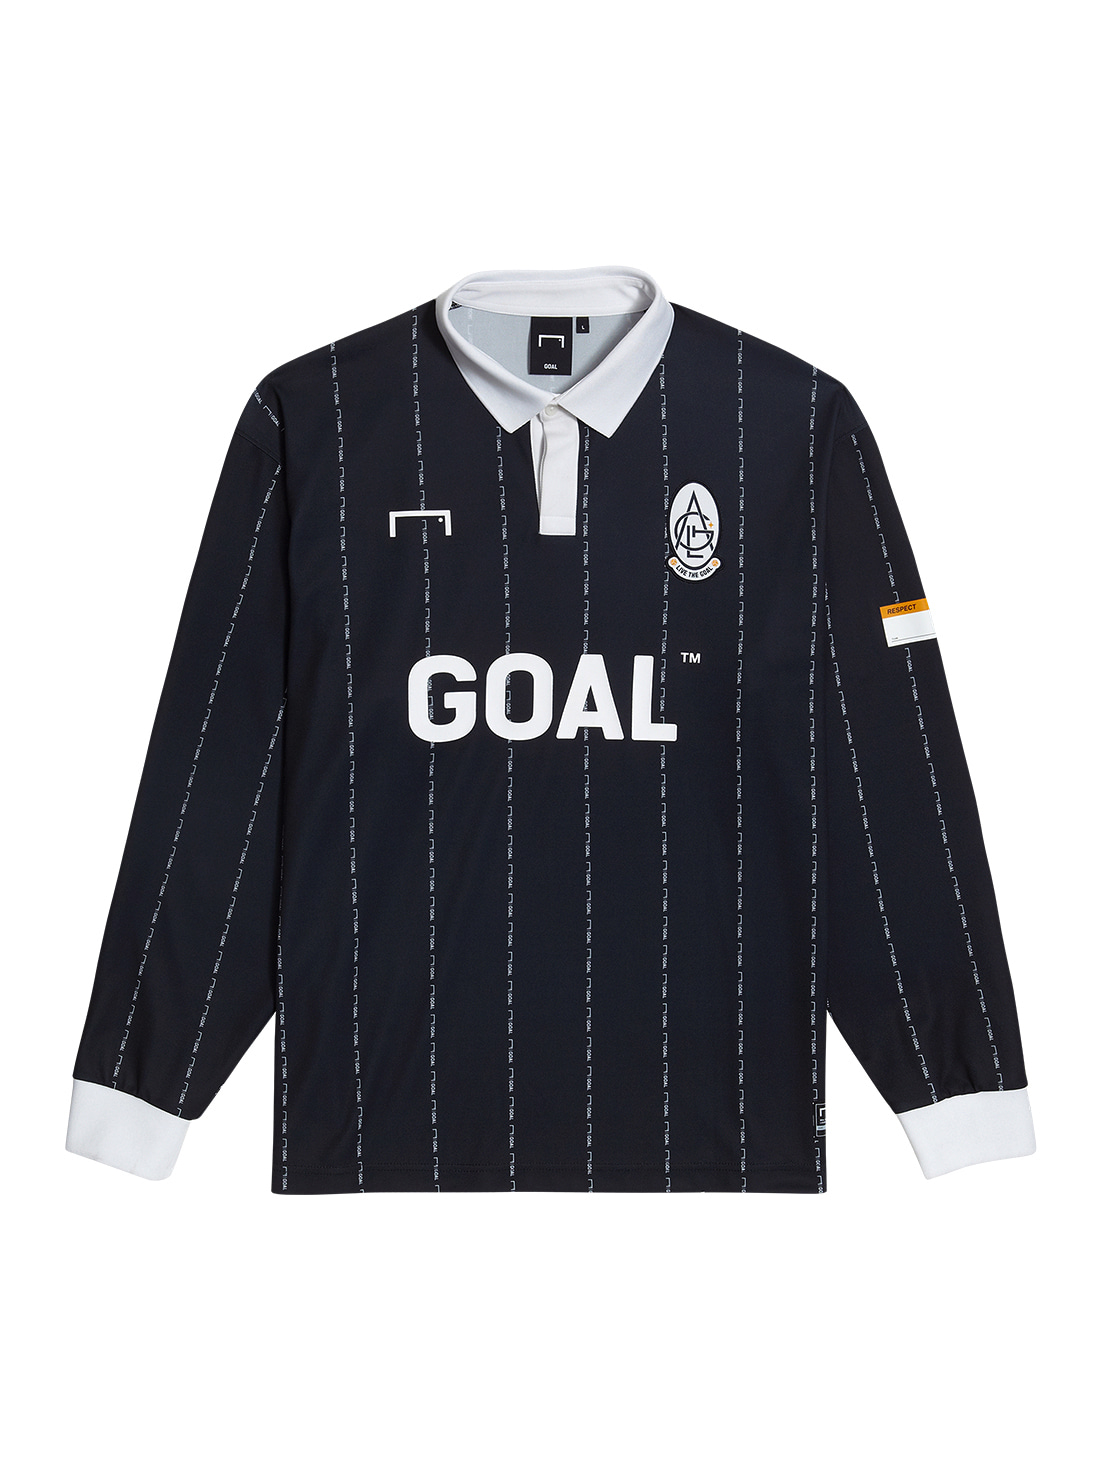 GOALSTUDIO PLAYER EMBLEM JERSEY - BLACK